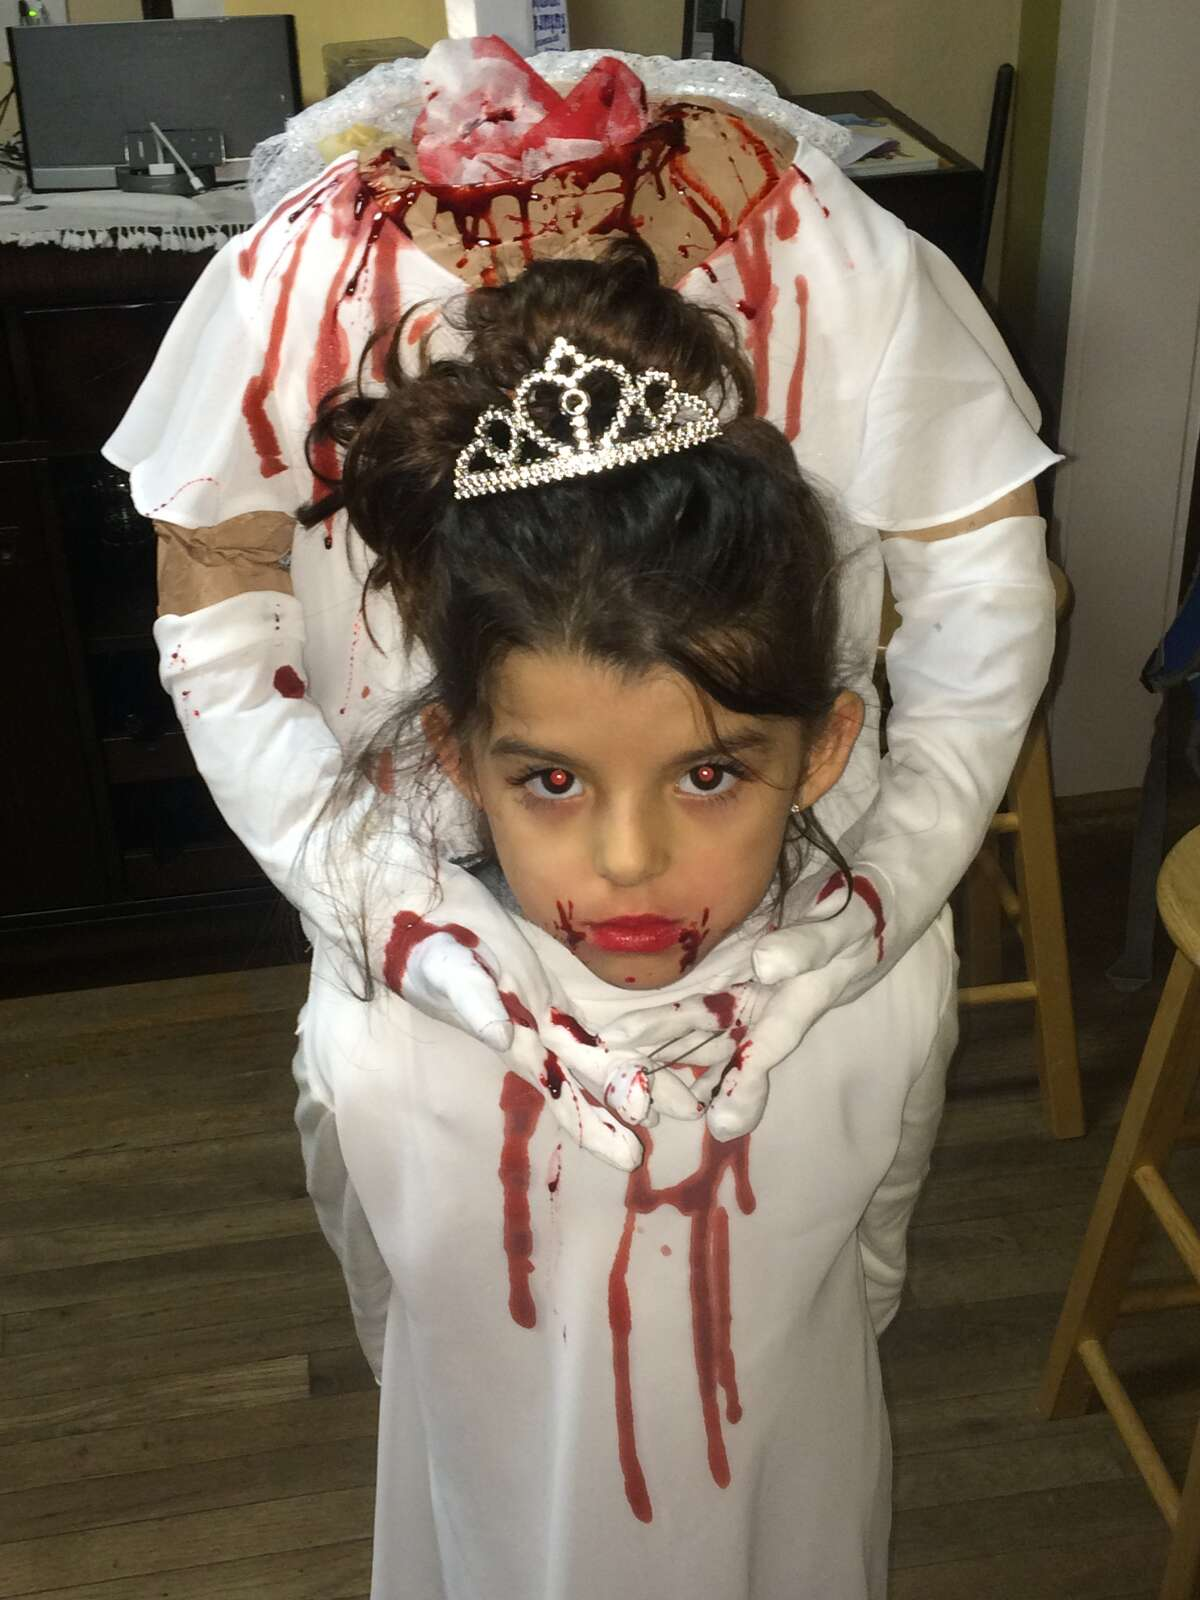 Congratulations to Rex Rehmeyer of Houston, who is the winner of our Halloween photo contest. Rex will receive a $500 gift card from Randall's for this adorable shot of a little girl holding her own head. Click through the slideshow to see more of the best Halloween photos Houston has to offer.